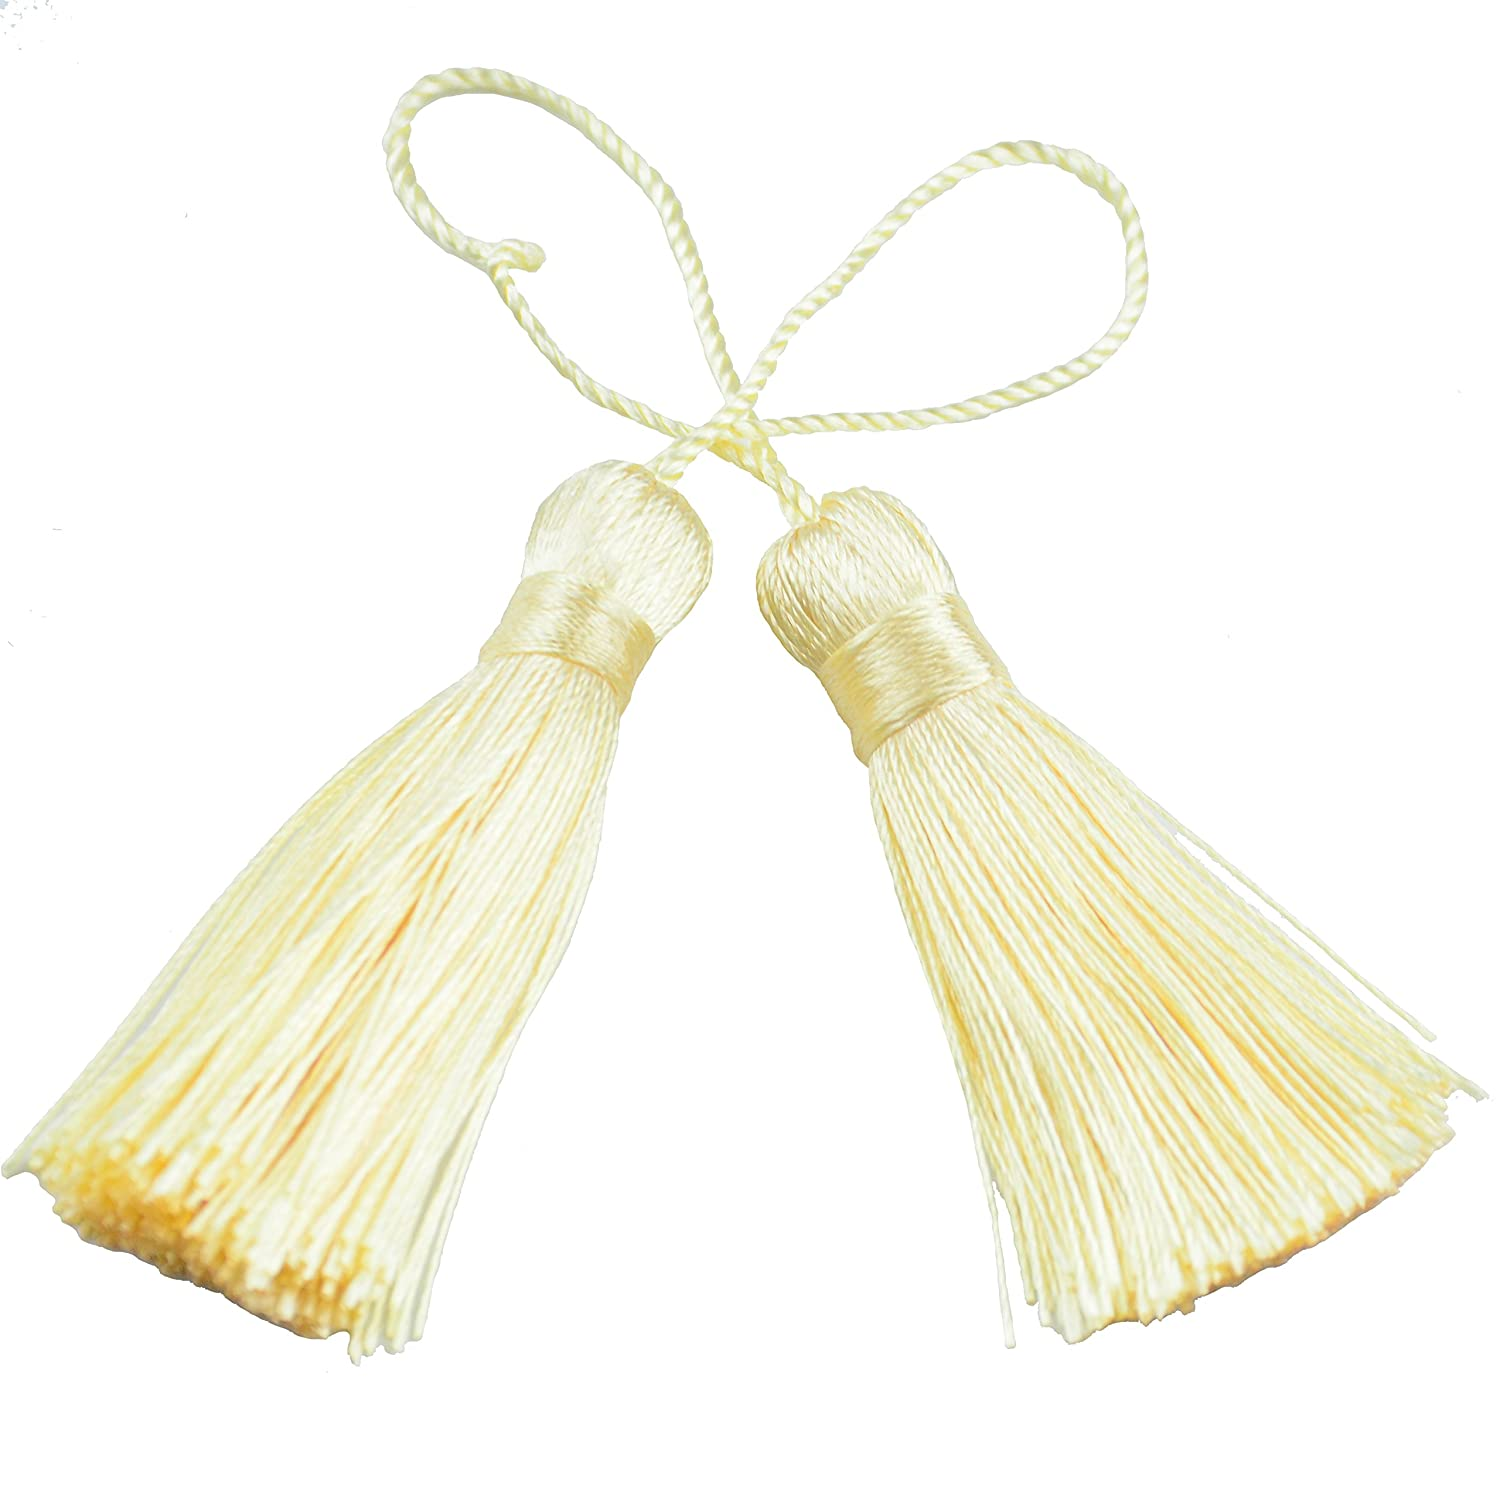 Makhry 20pcs 4.3 Inch Handmade Silky Floss Mini Tiny Craft Tassels with 2-Inch Cord Loop and Small Chinese Knot for Earrings, Souvenir, Bookmarks, DIY Craft Accessory,Tags (Red) MKMF20#3